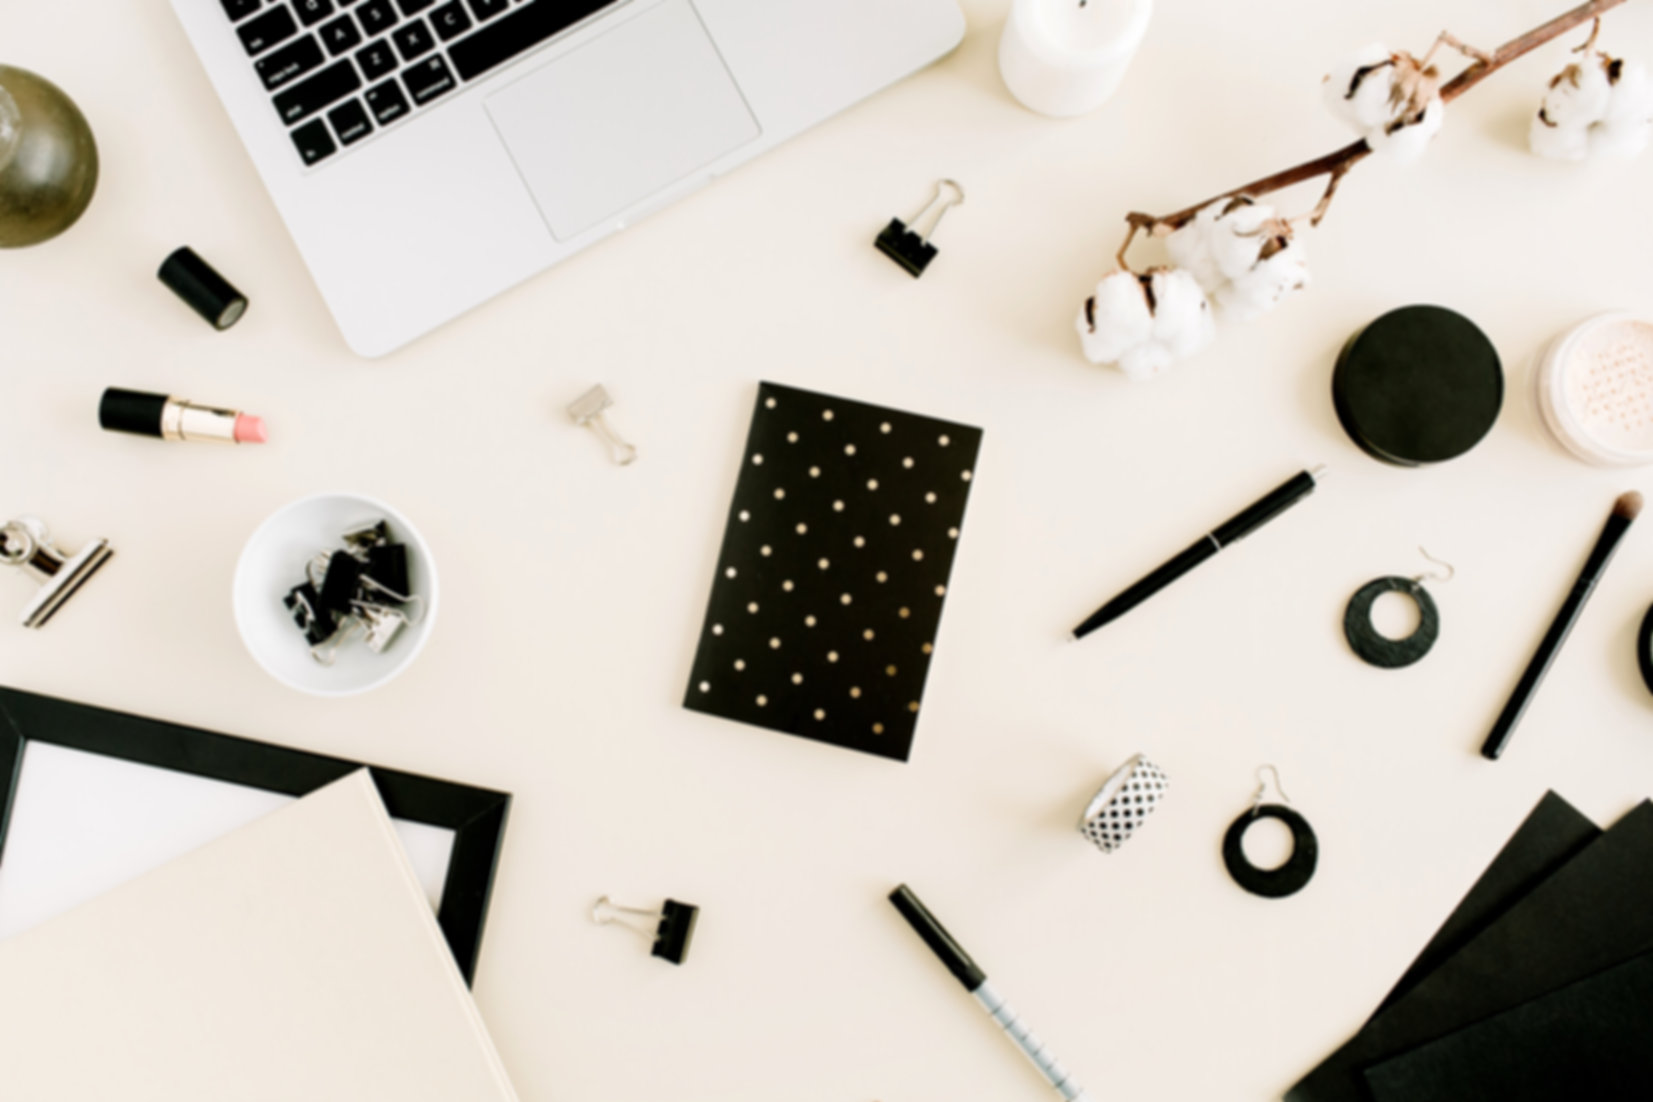 Canva - Accessories on White.jpg